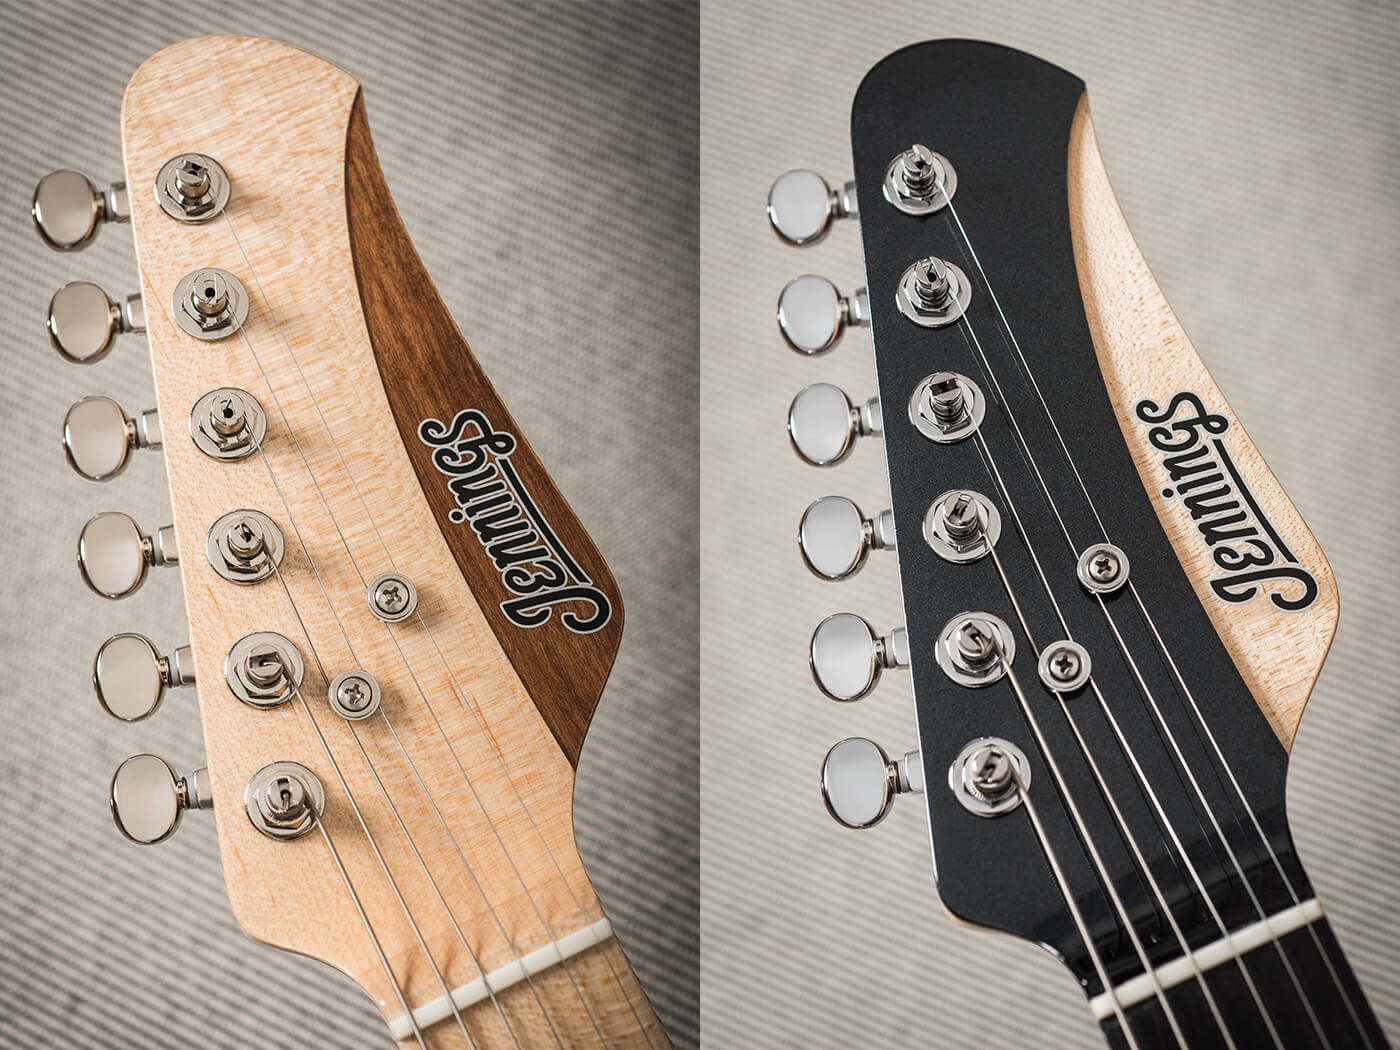 jennings guitars voyager deluxe catalina headstock